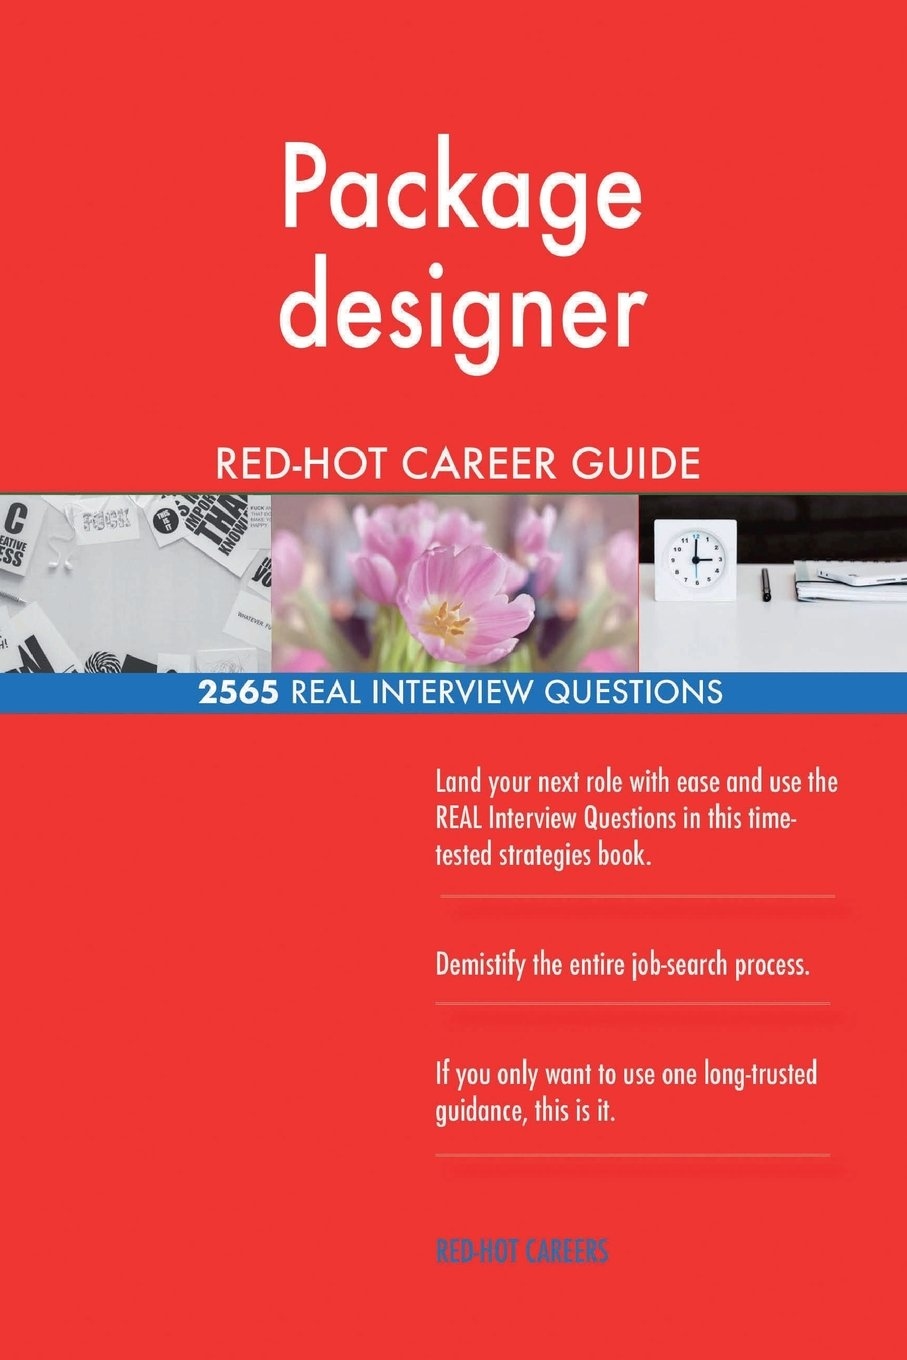 Package Designer Red Hot Career Guide 2565 Real Interview Questions Careers Red Hot 9781718675841 Amazon Com Books